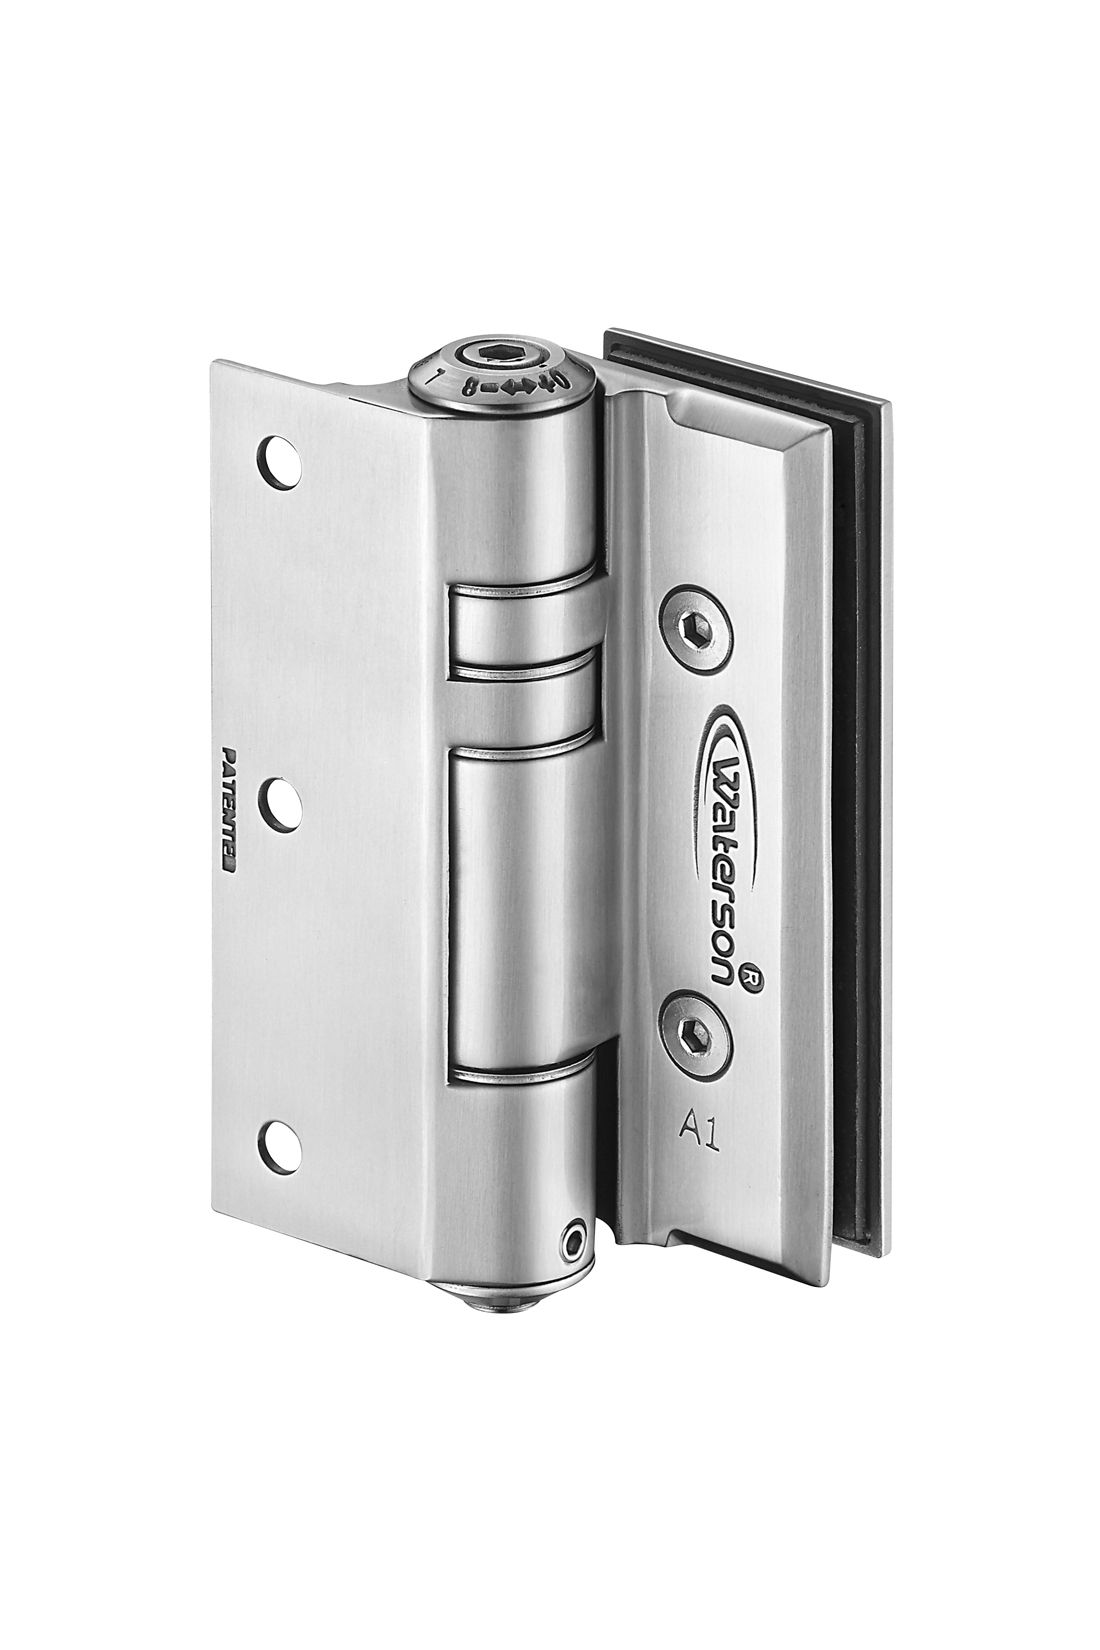 The traditional floor spring requires laborious installation with the traditional floor spring requires laborious installation with waterson door closer hinge you planetlyrics Images